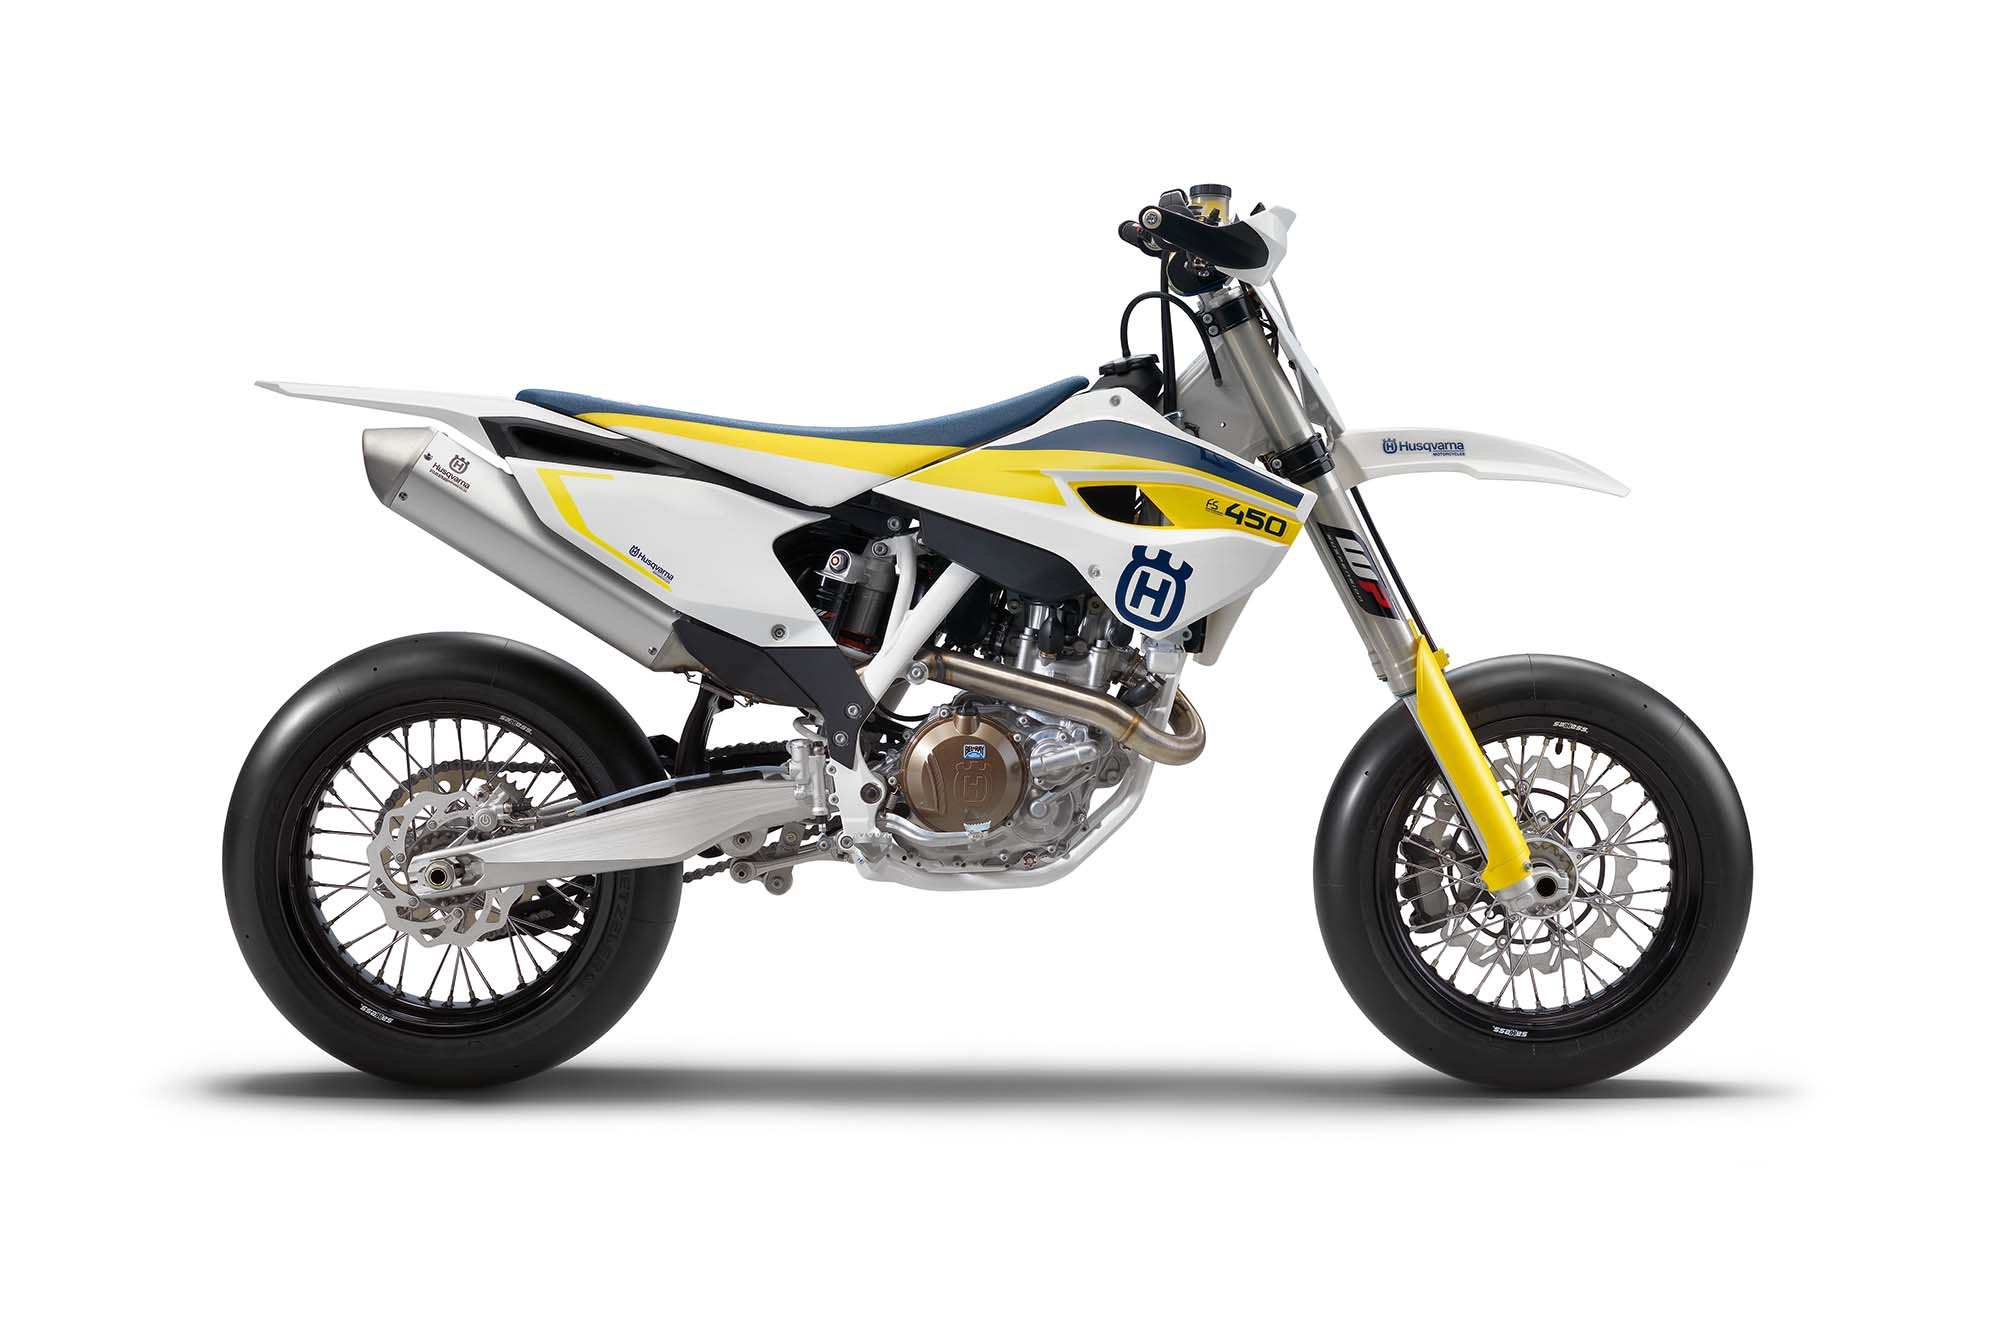 2015 husqvarna fs 450 husky returns to supermoto. Black Bedroom Furniture Sets. Home Design Ideas